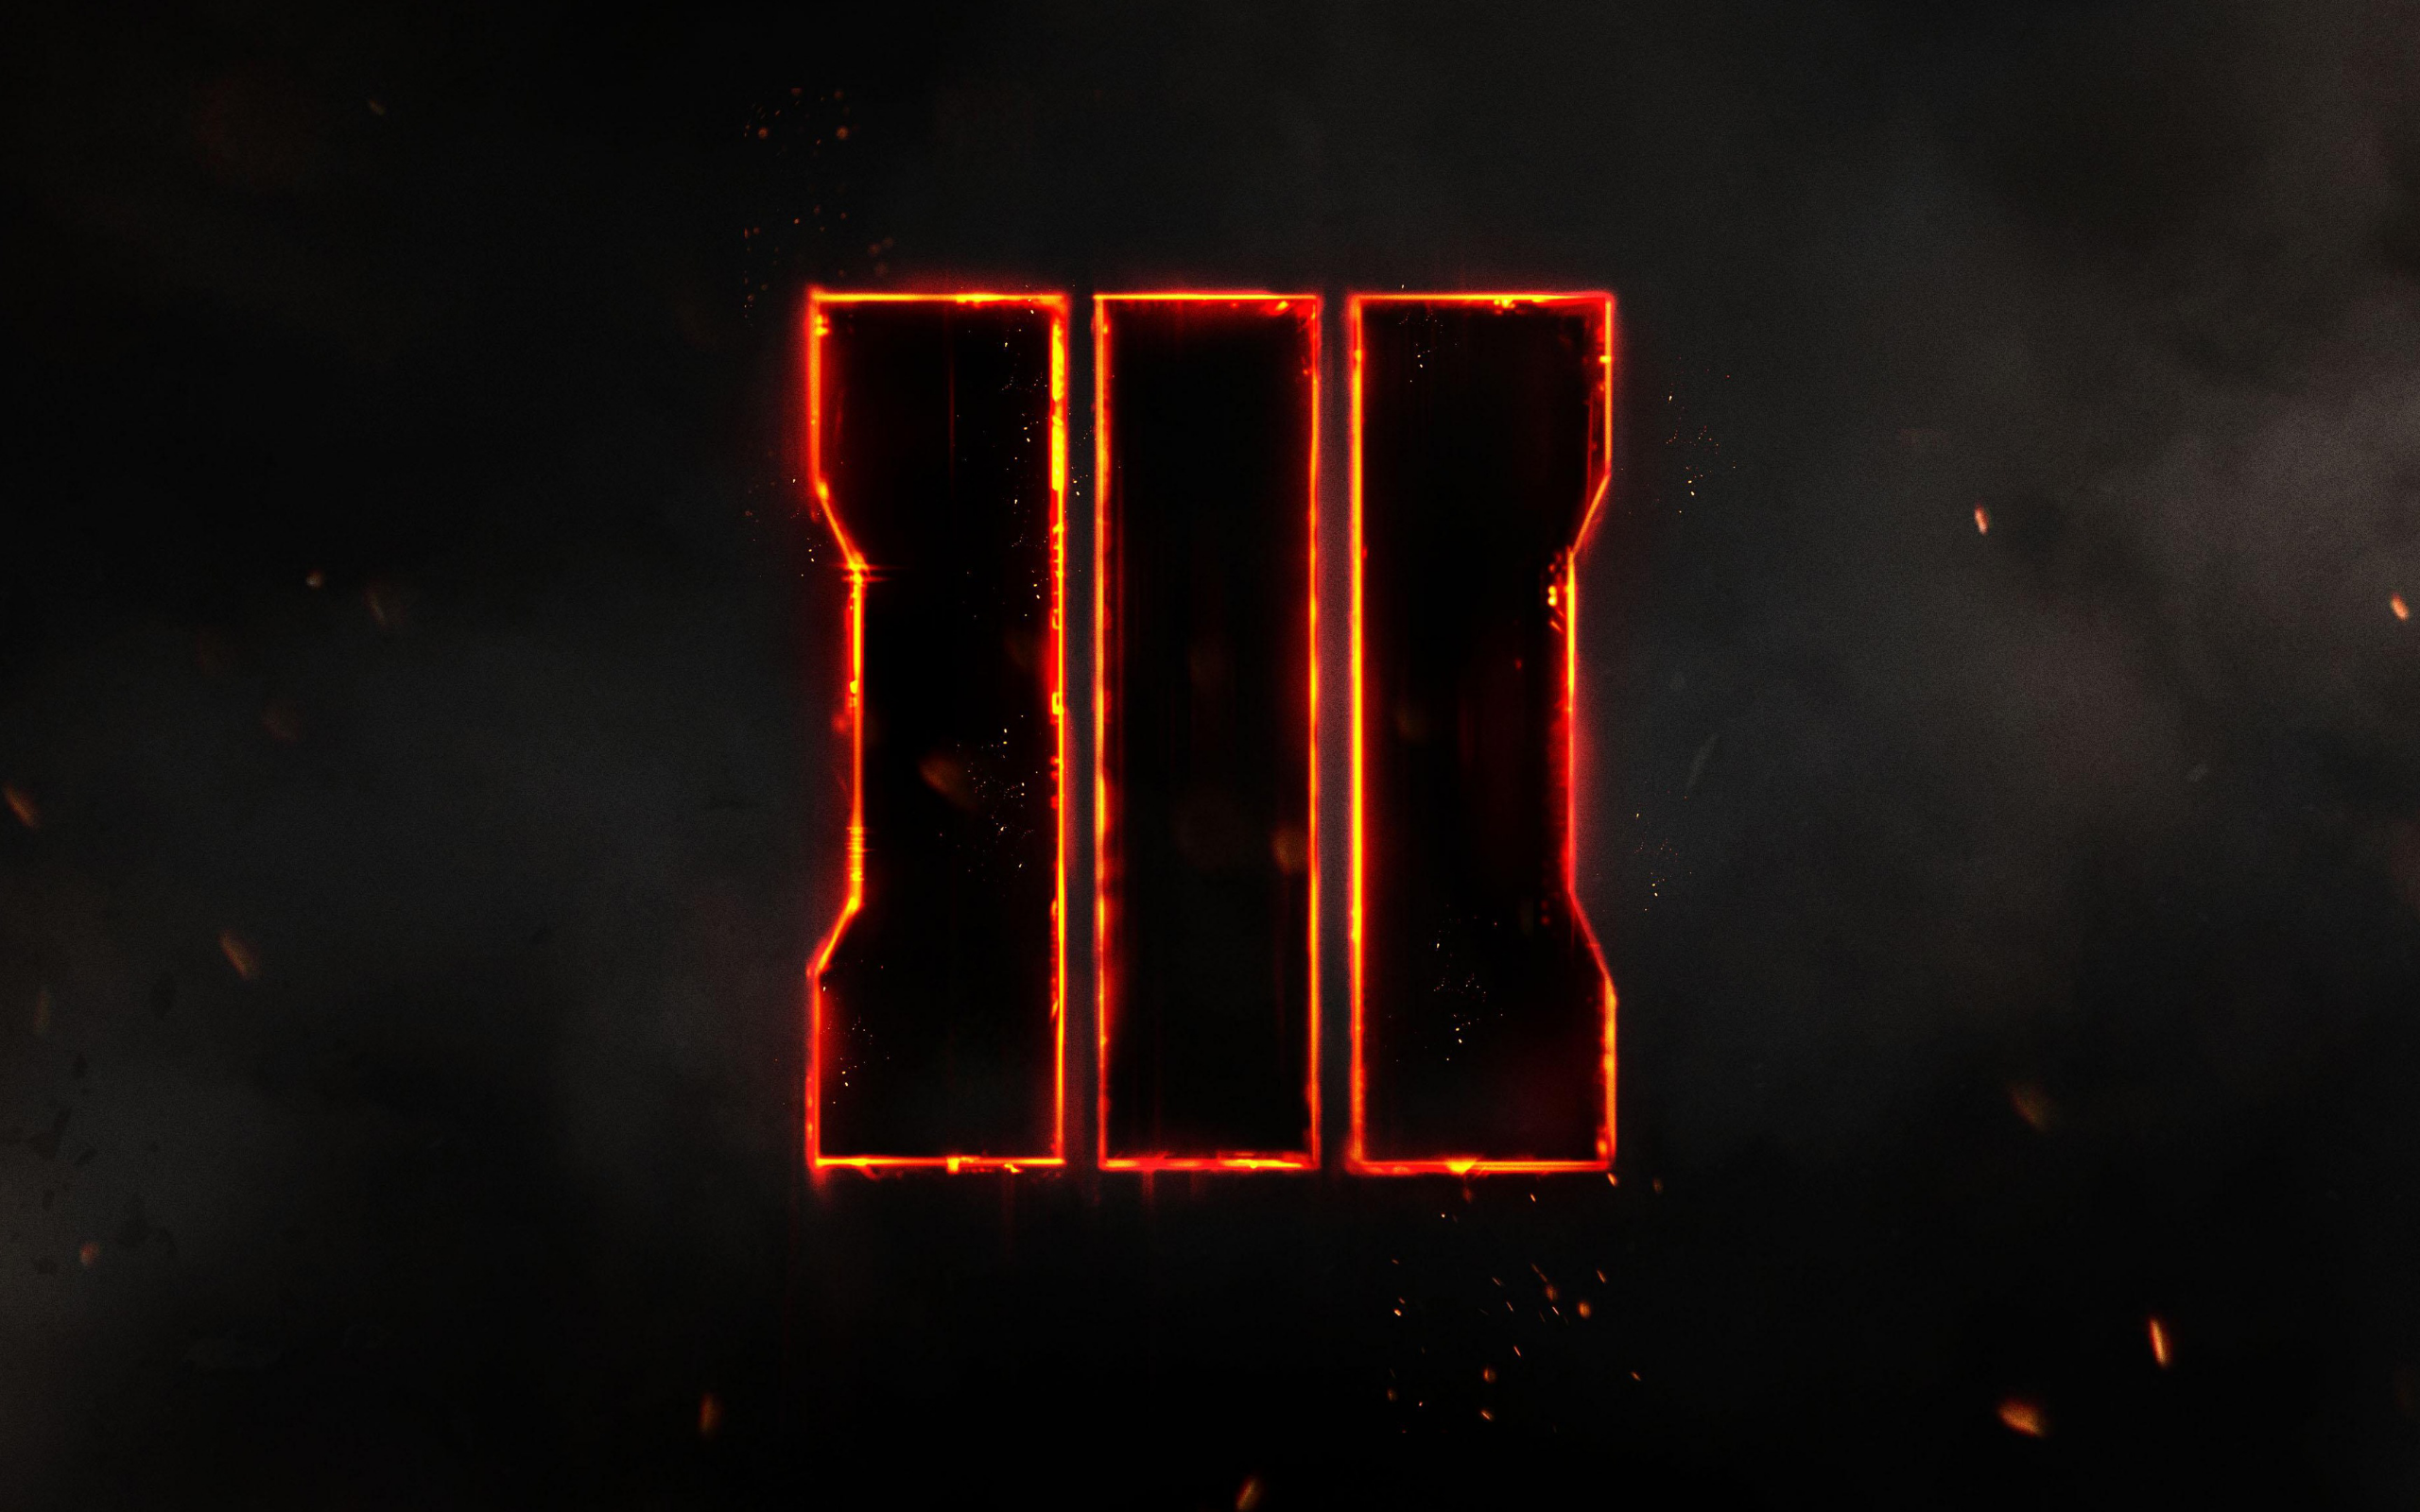 Call Of Duty Black Ops 3 Hd Wallpapers: 2048x1152 2016 Call Of Duty Black Ops 3 2048x1152